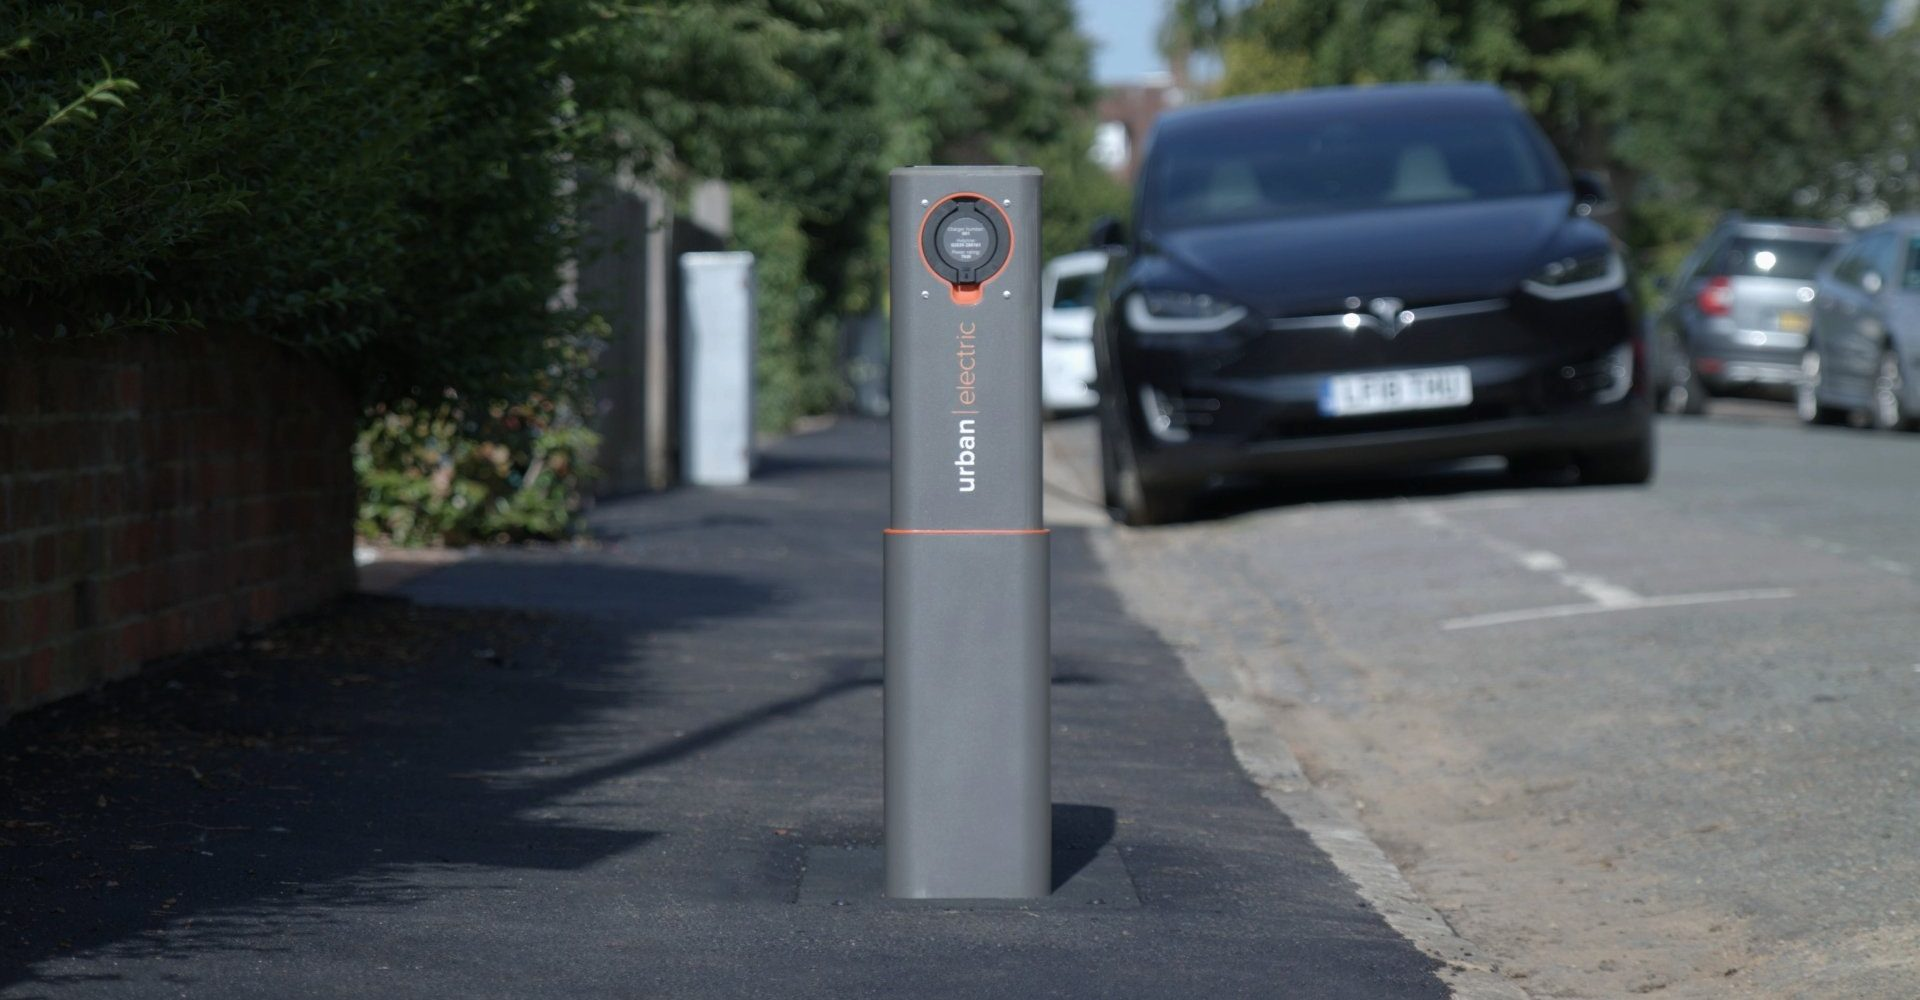 Oxford installs pop-up electric vehicle chargers